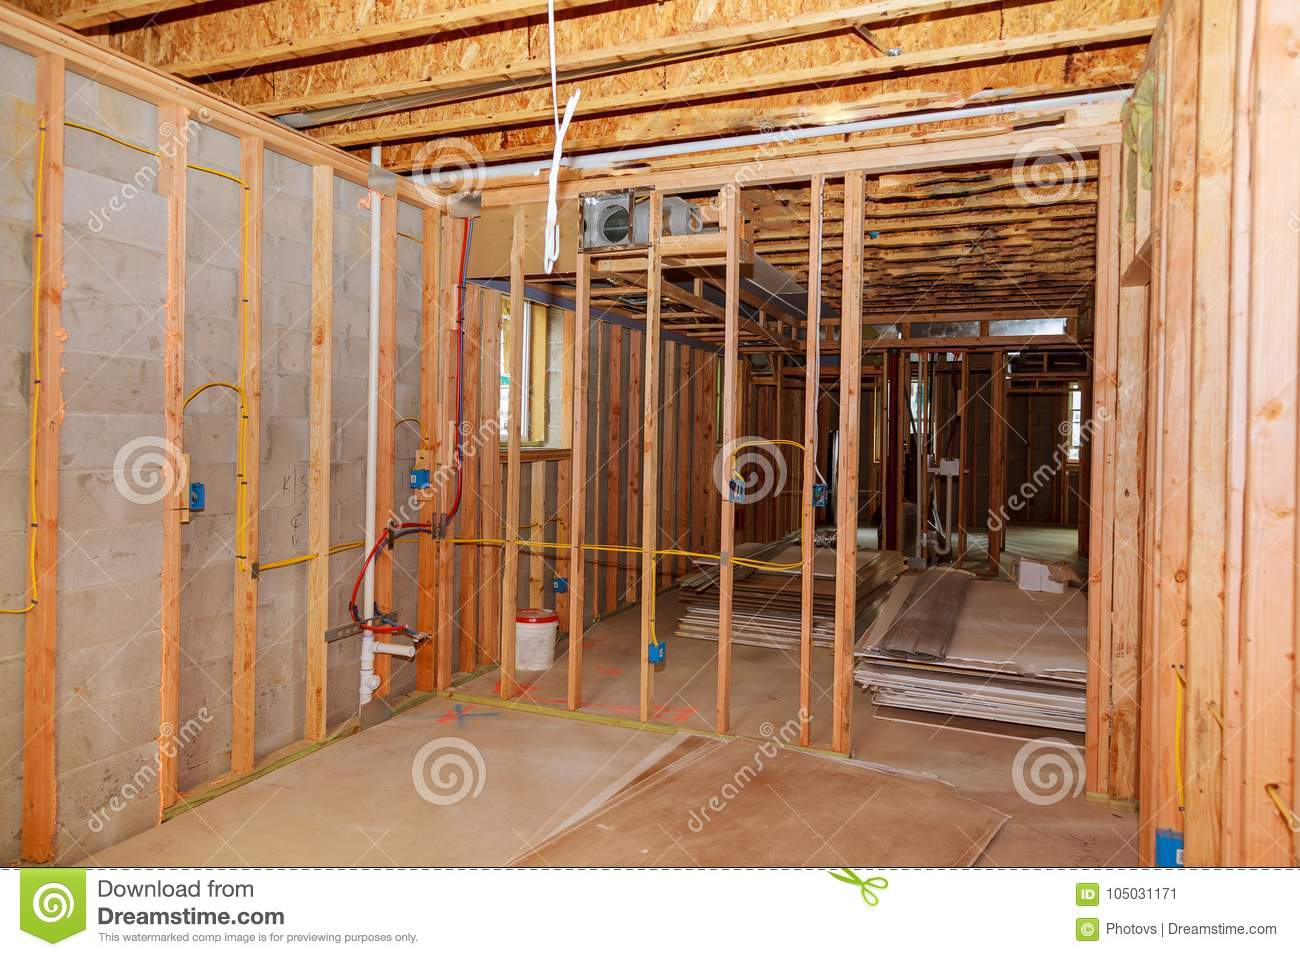 Download The Frame Building Or House With Basic Electrical Wiring Stock  Image - Image of industry